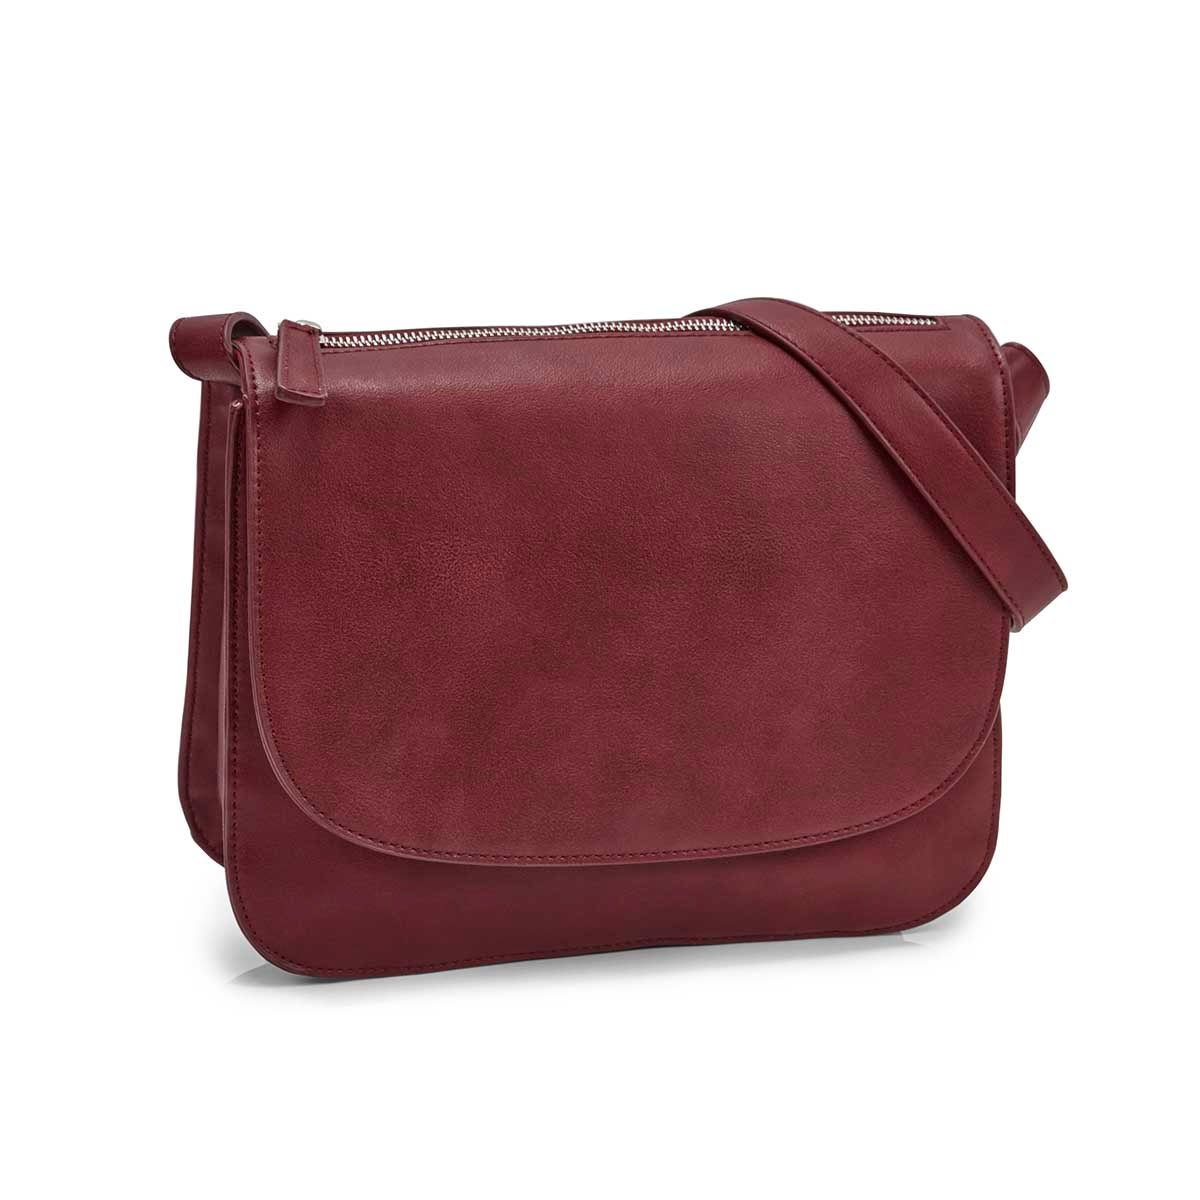 Women's MATTIE plum crossbody saddle bag